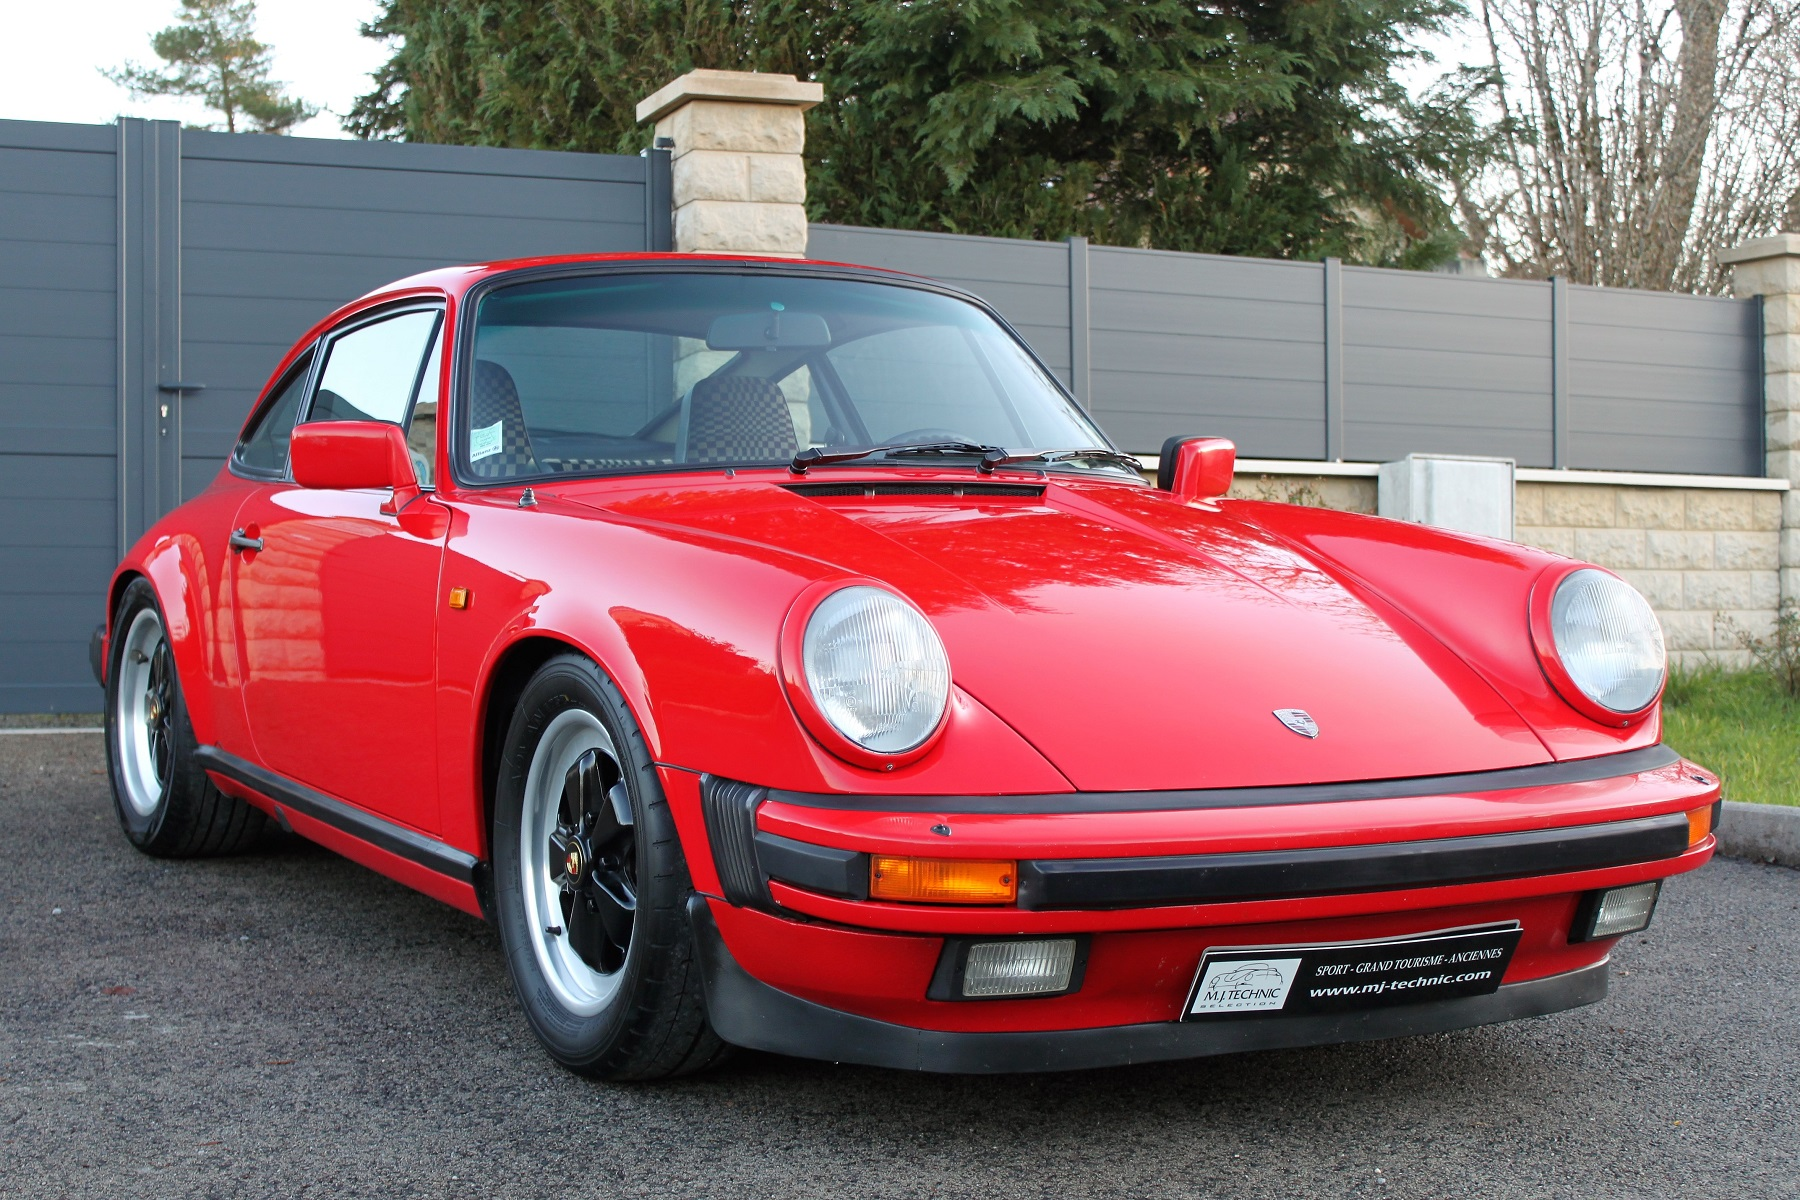 PORSCHE 911 3.2L 915 ROUGE INDIEN MJ TECHNIC (12)